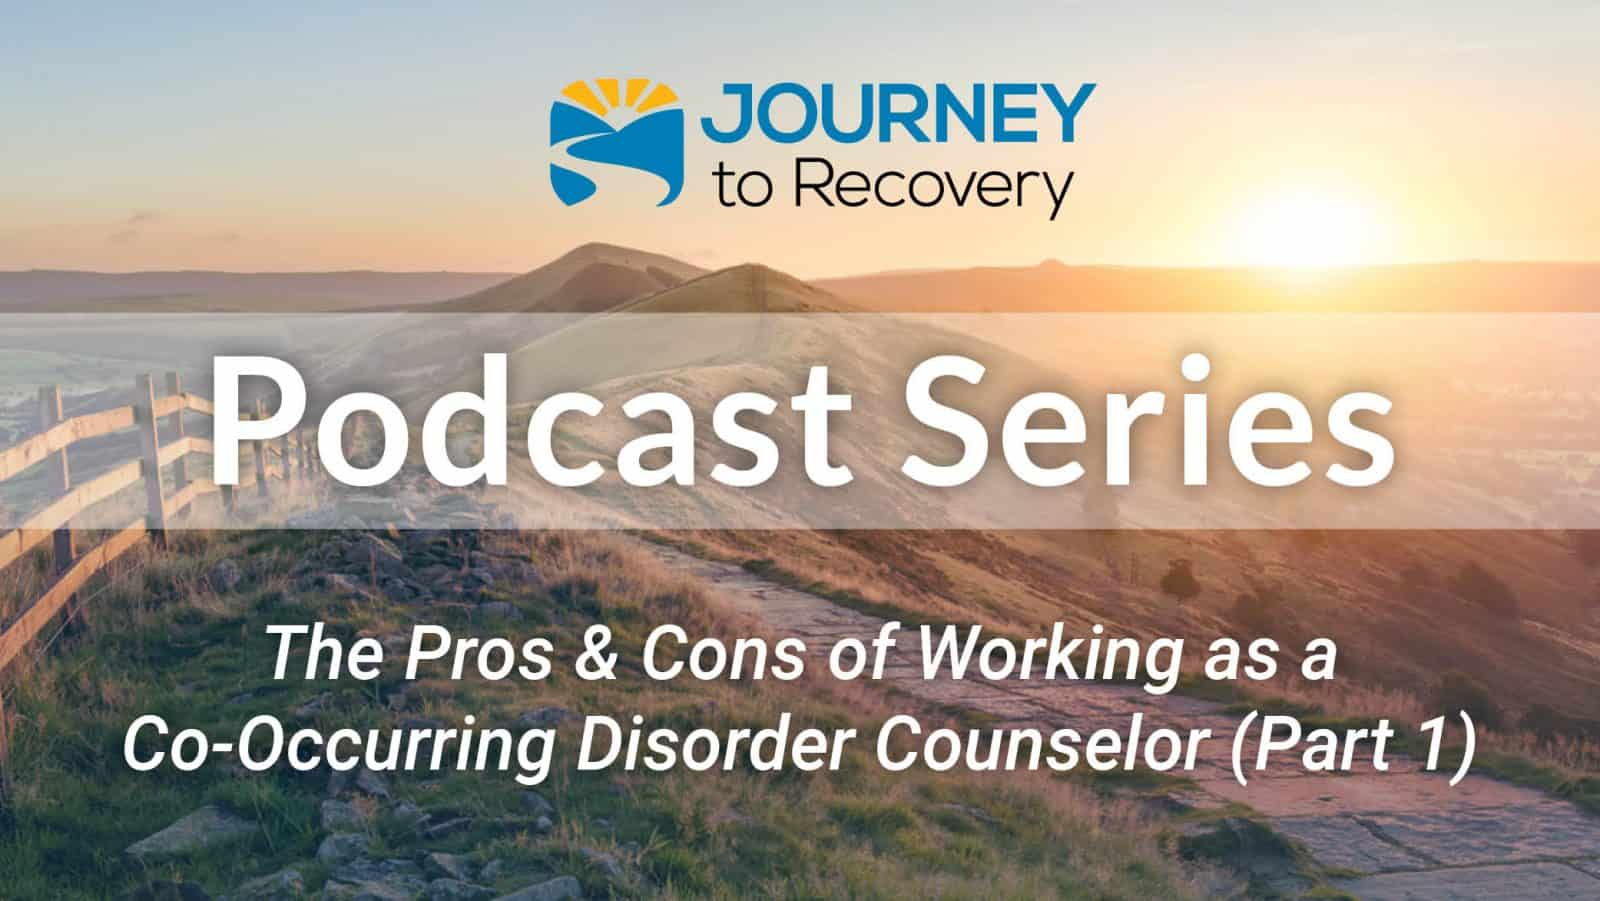 The Pros and Cons of Working as a Co-Occurring Disorder Counselor (Part 1)